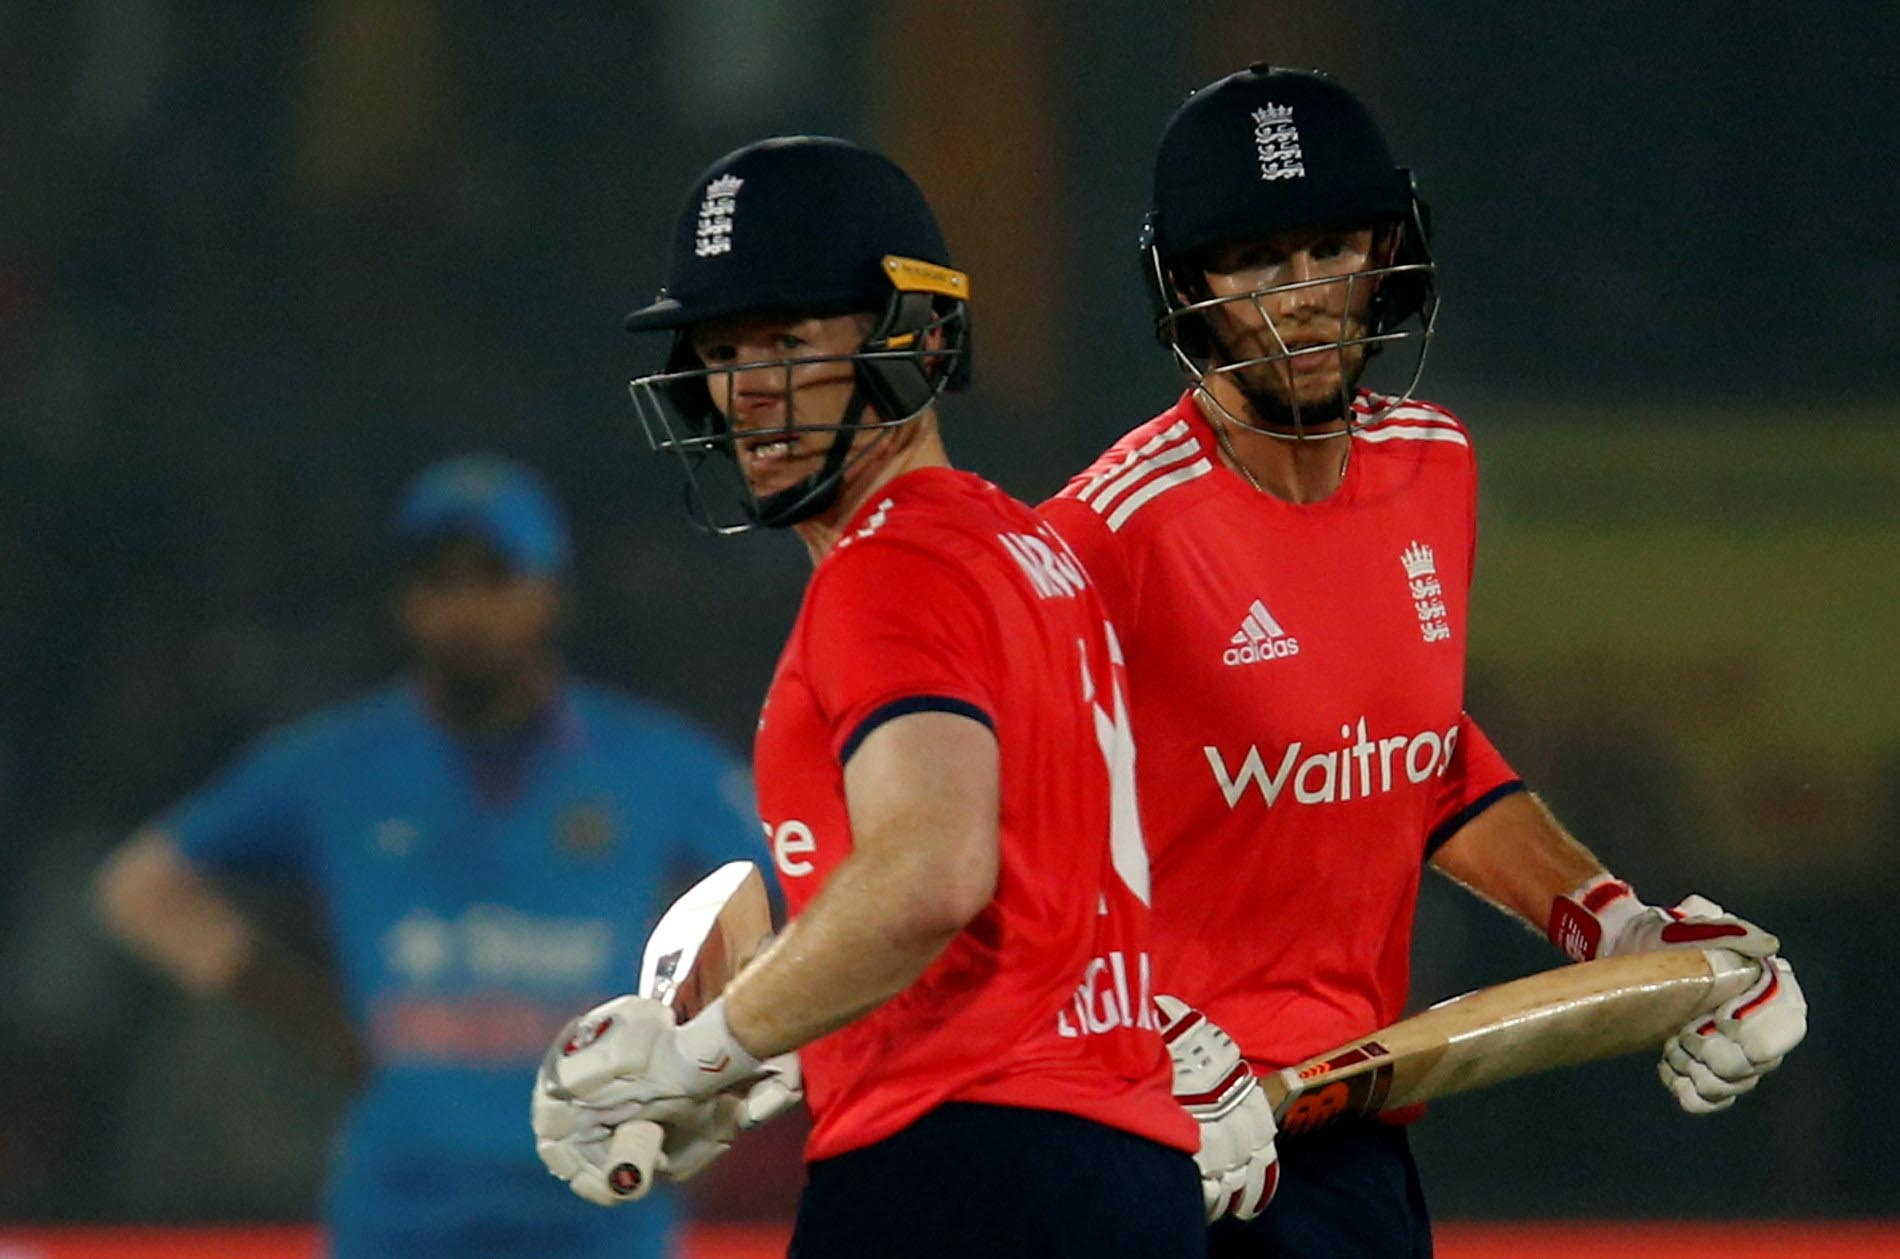 Eoin Morgan (left) has called for DRS to be introduced in T20s after an incorrect umpring decision to adjudge Joe Root out (Image credit: Reuters)